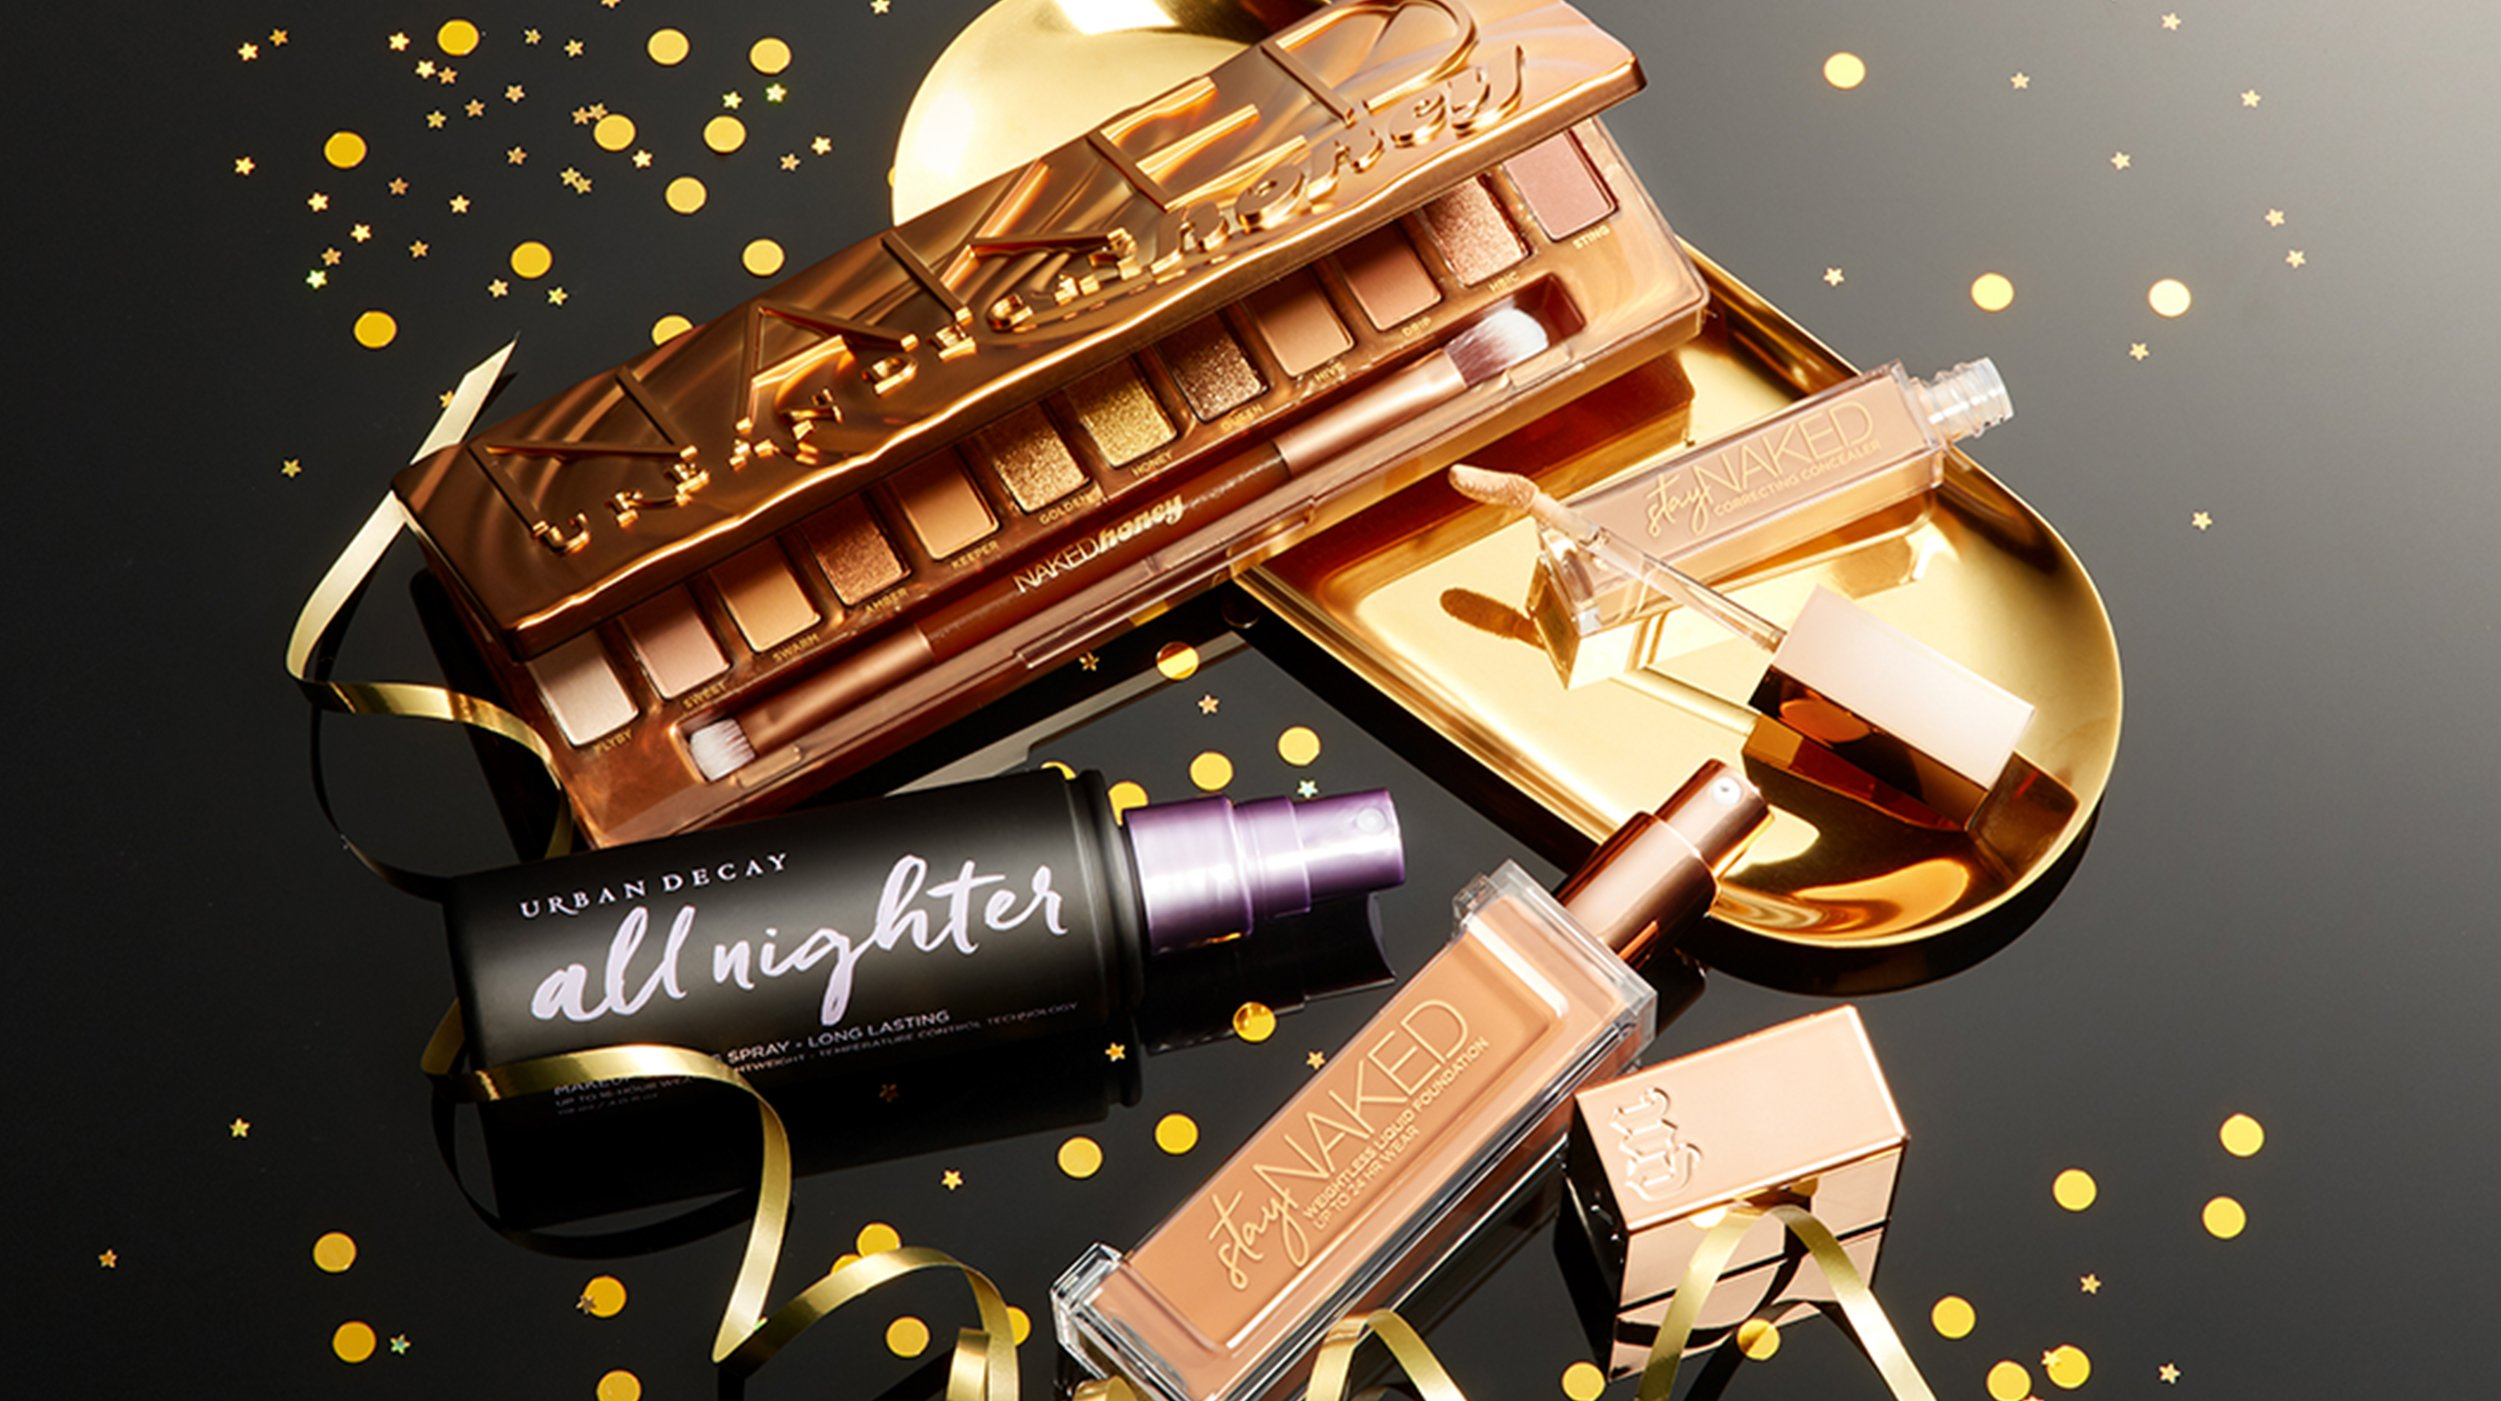 November brand of the month: Urban Decay